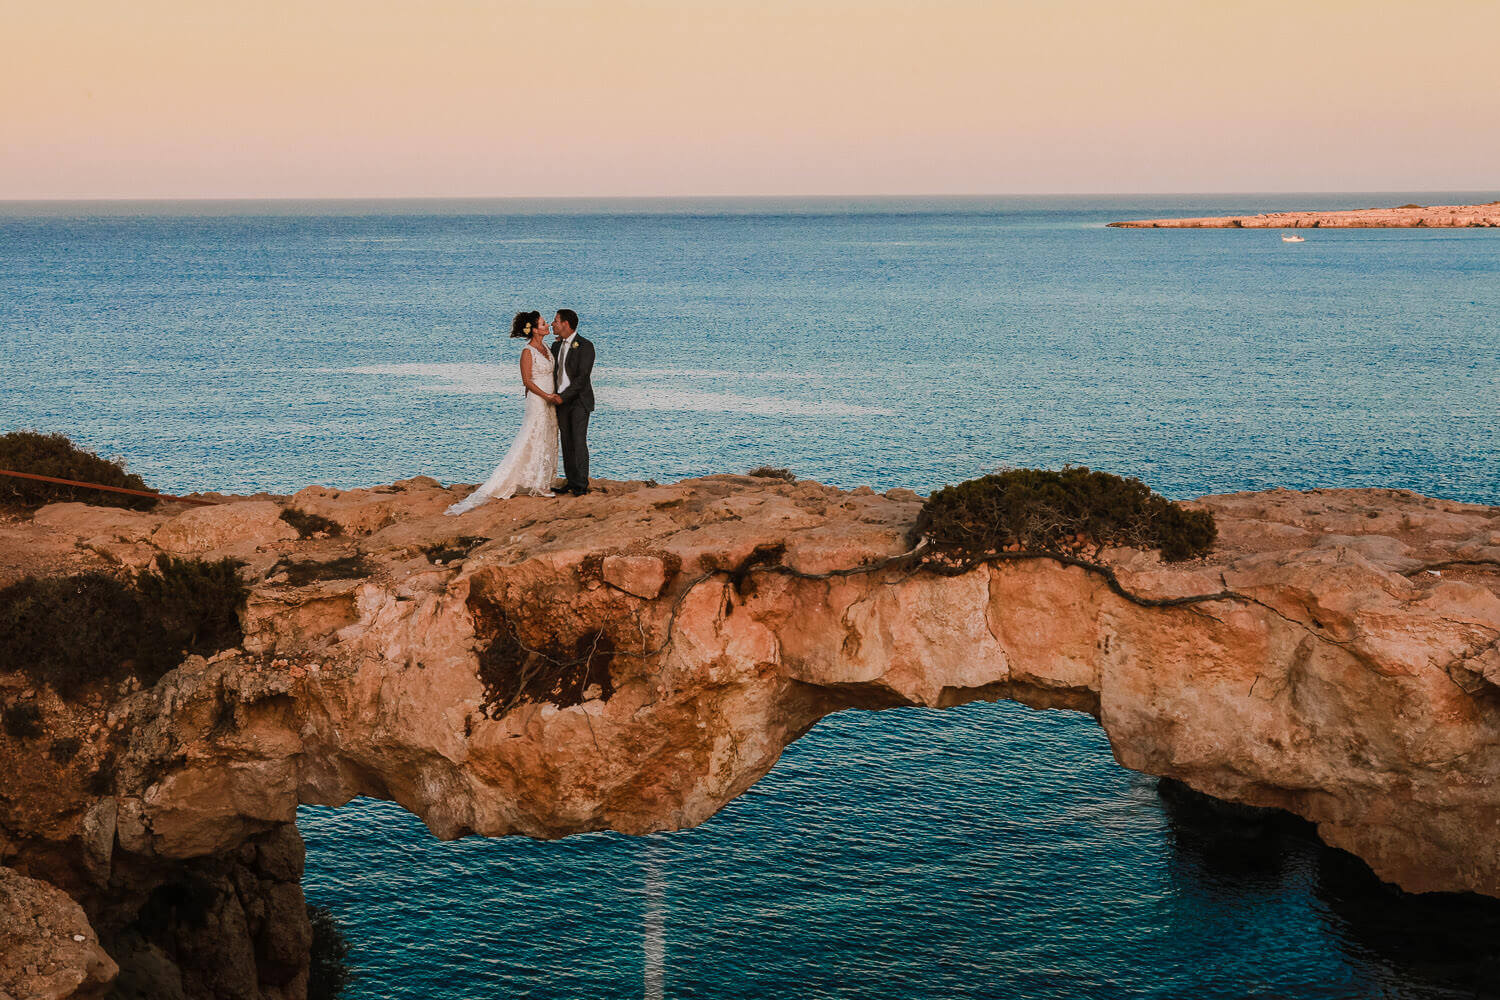 Epic photo of wedding couple standing on Cyprus love bridge, best wedding destinations in Europe